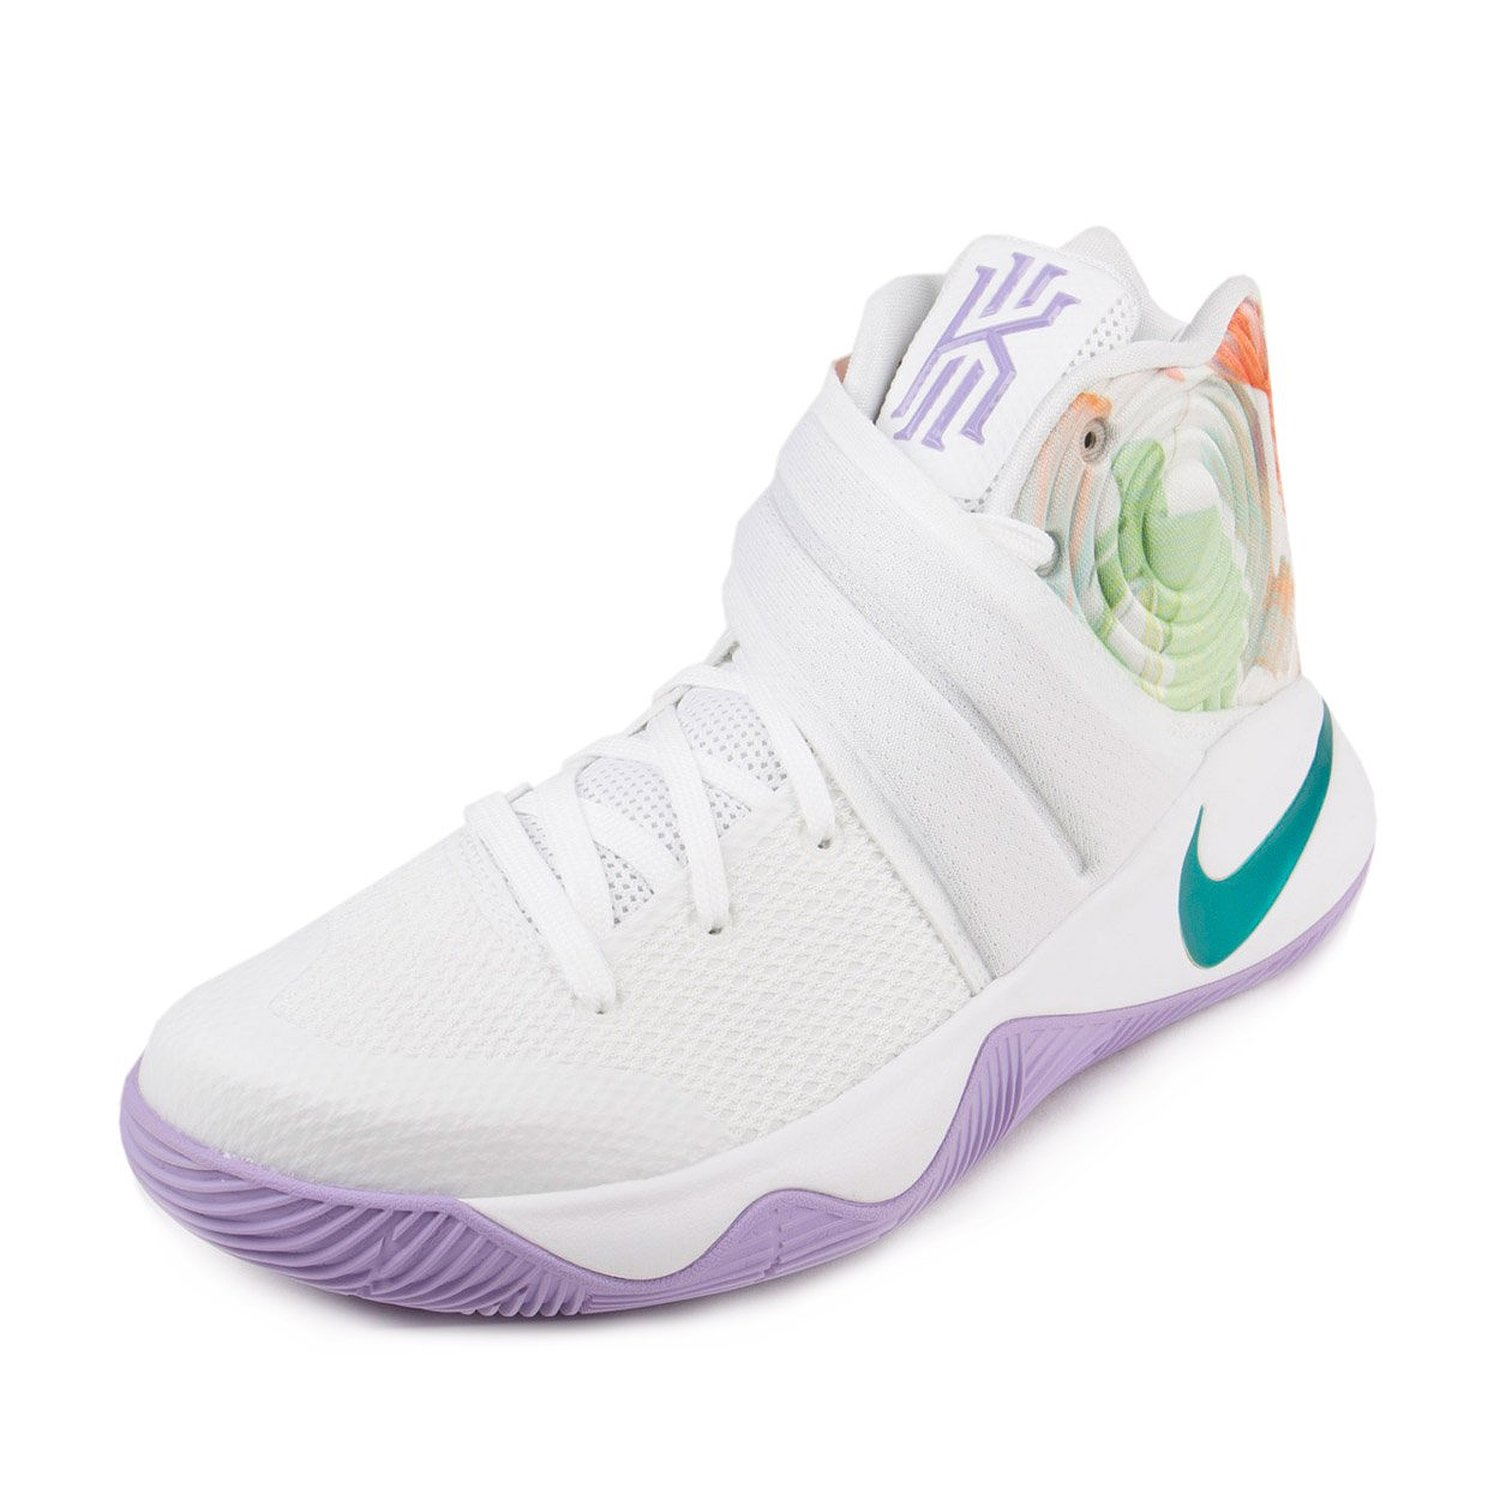 e4600ccf739a Get Quotations · Nike Mens Kyrie 2